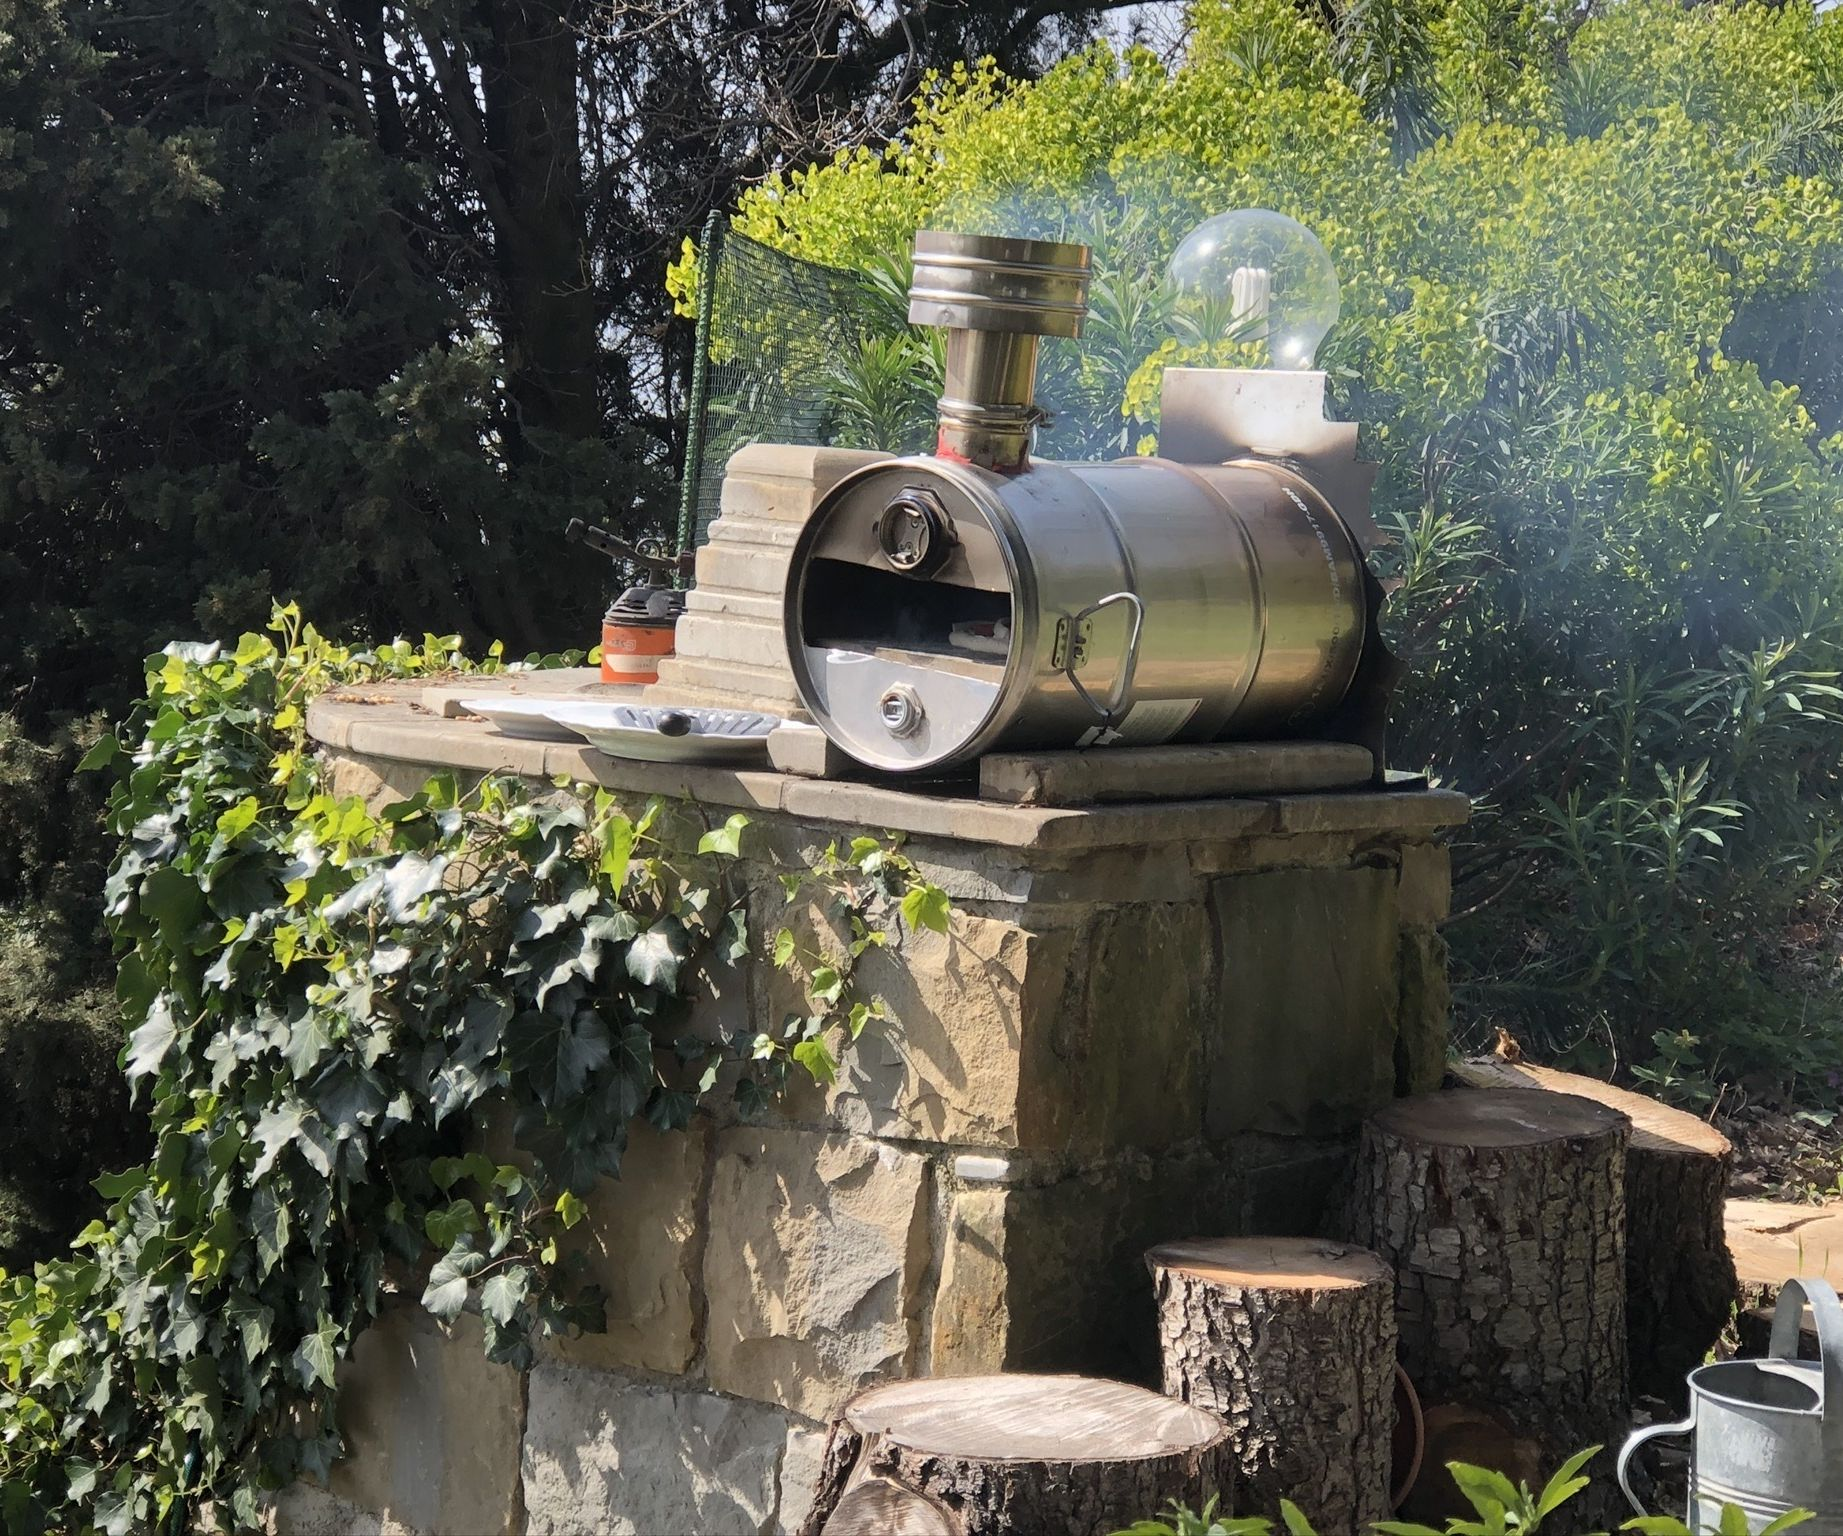 Small Experimental Portable Pizza Oven From Scrap